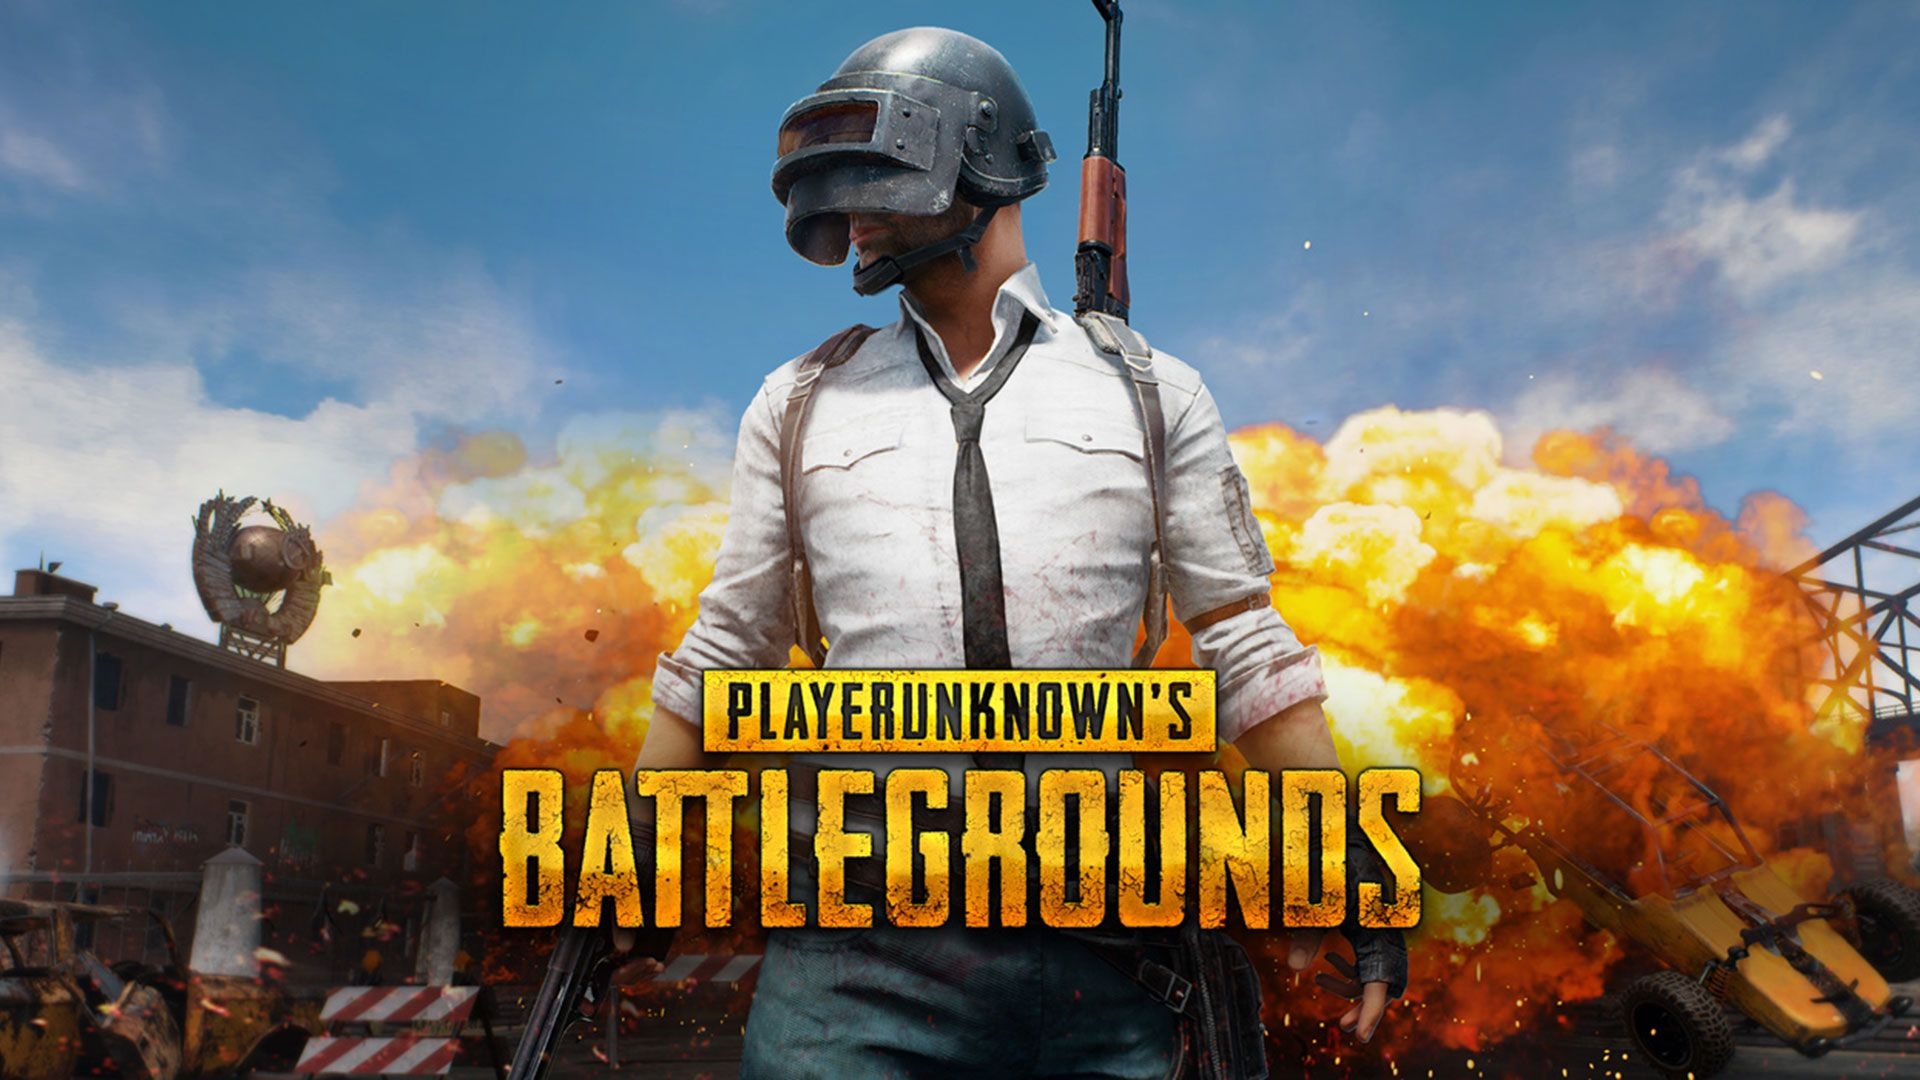 Pubg Wallpaper Phone: Pubg Wallpapers Full Hd On Wallpaper 1080p HD